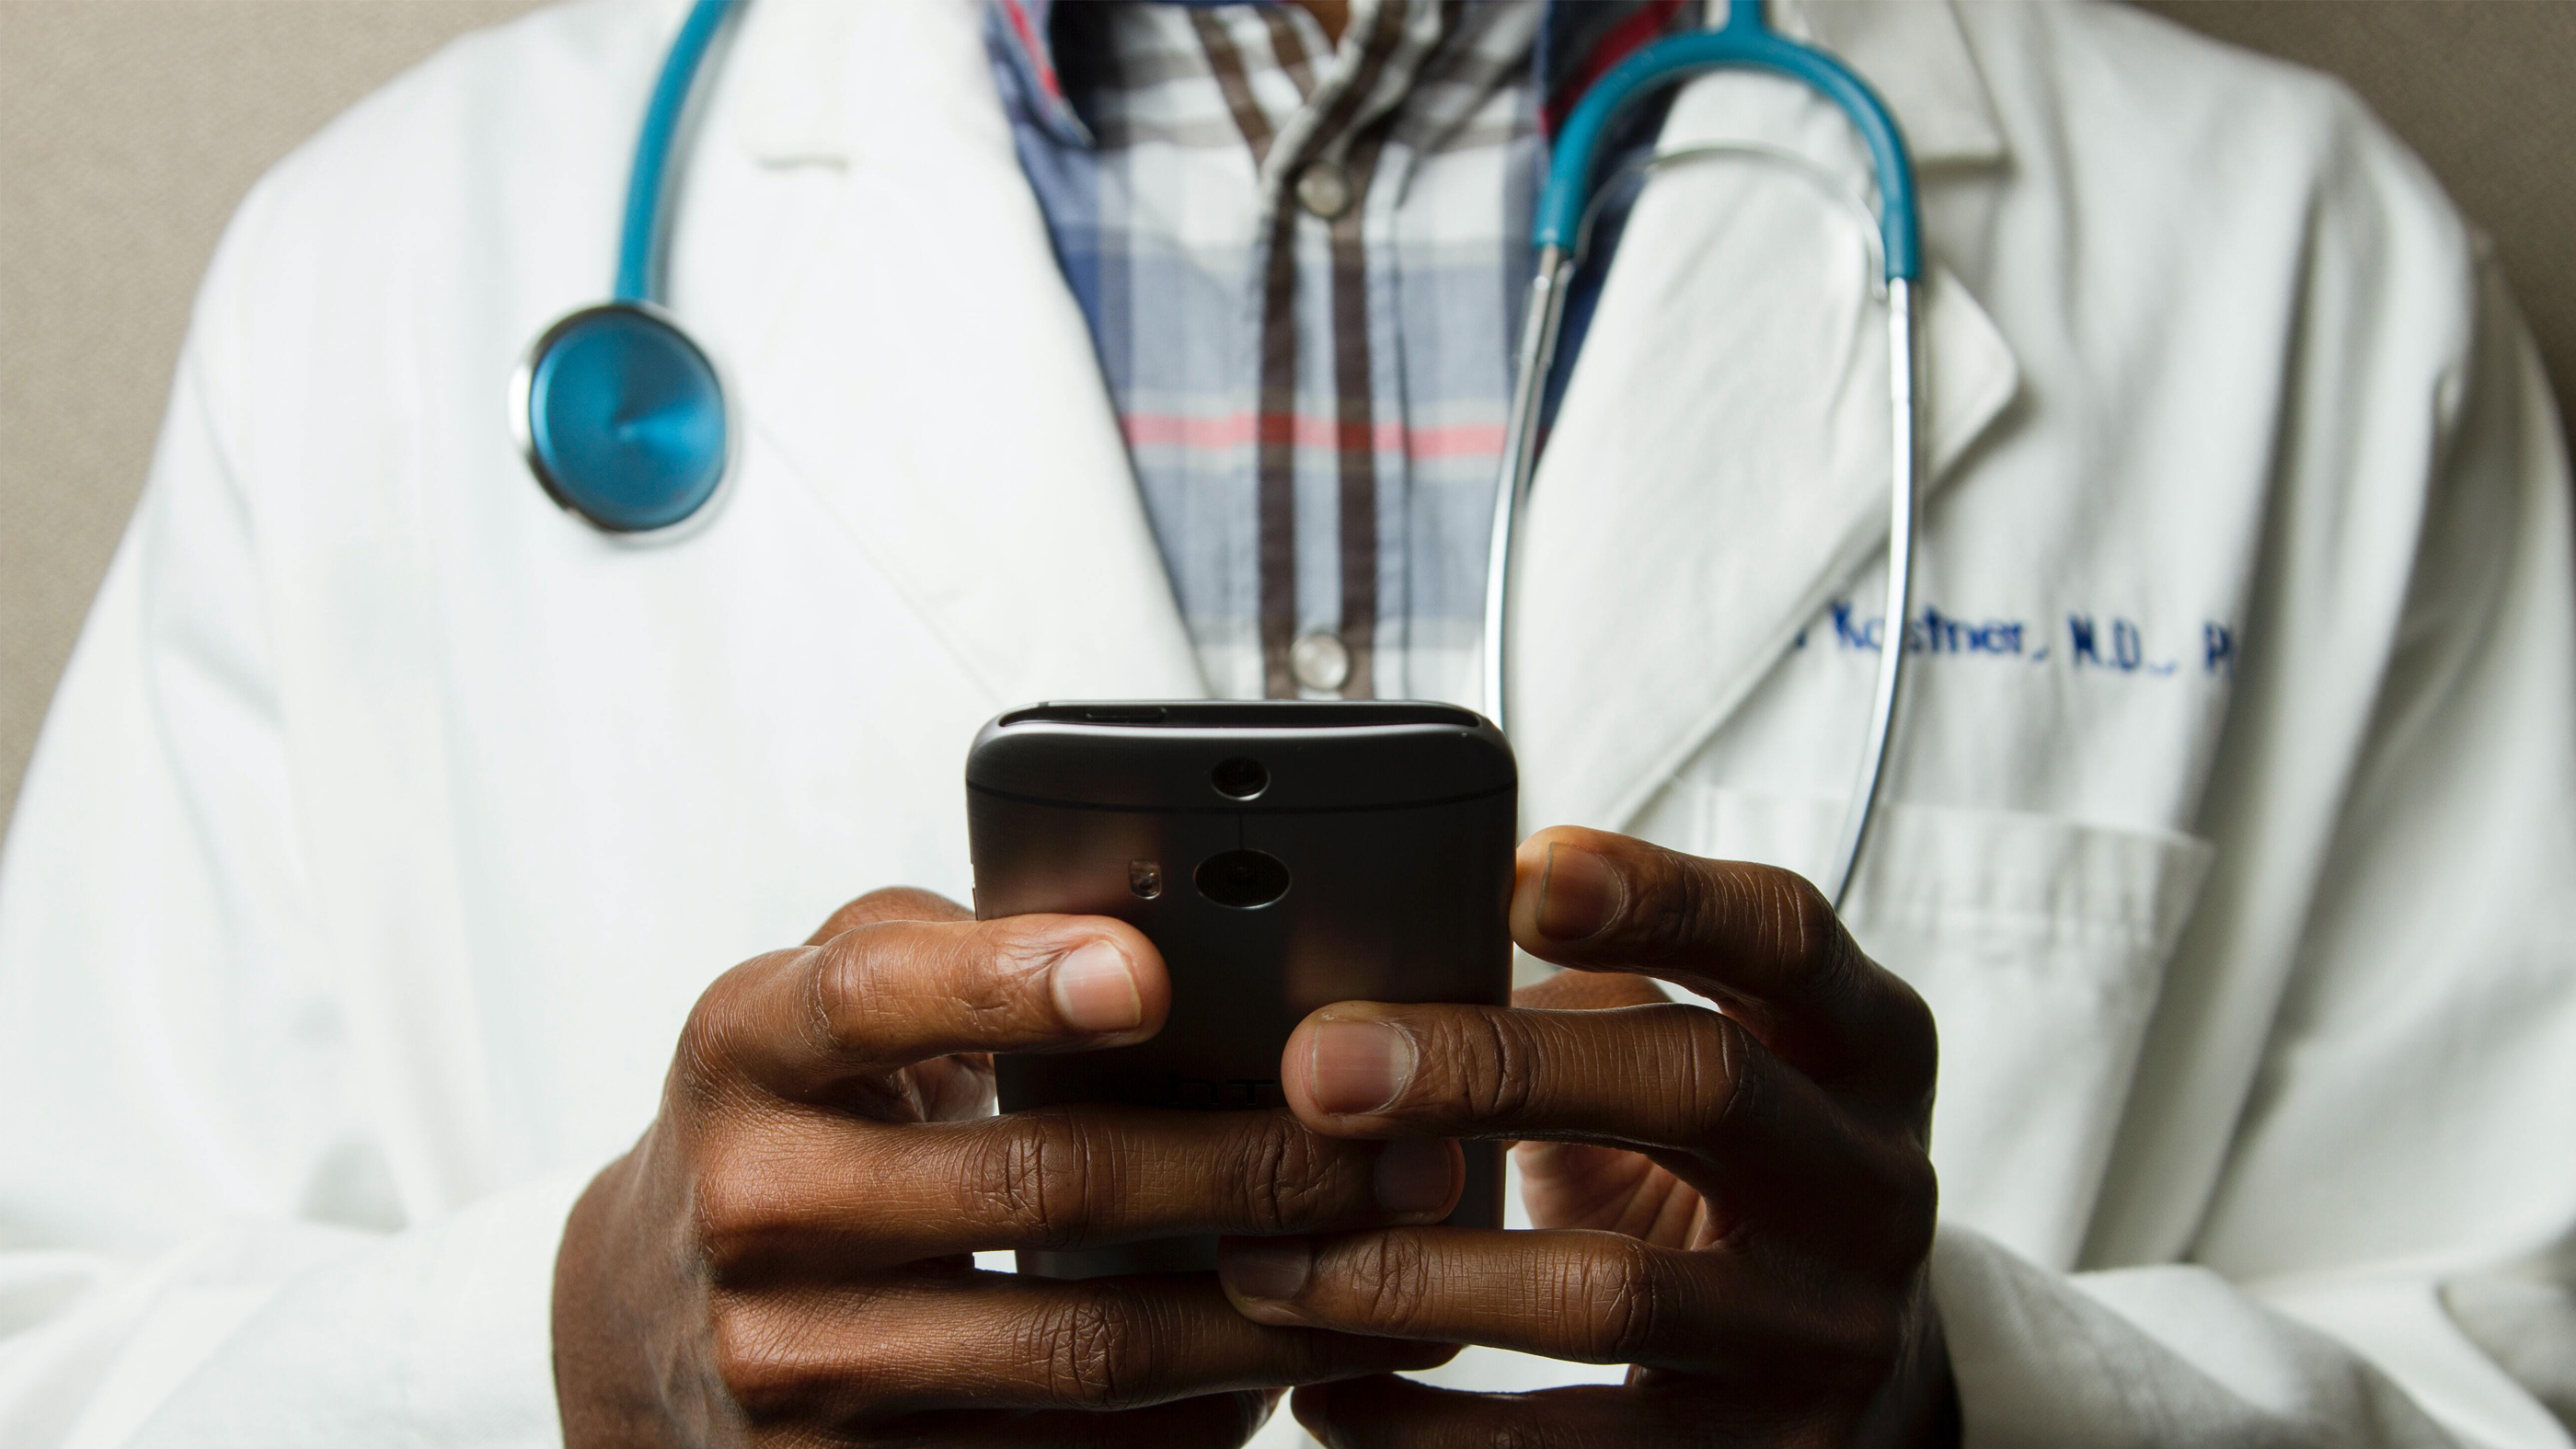 Digital transformation in healthcare doctor on phone